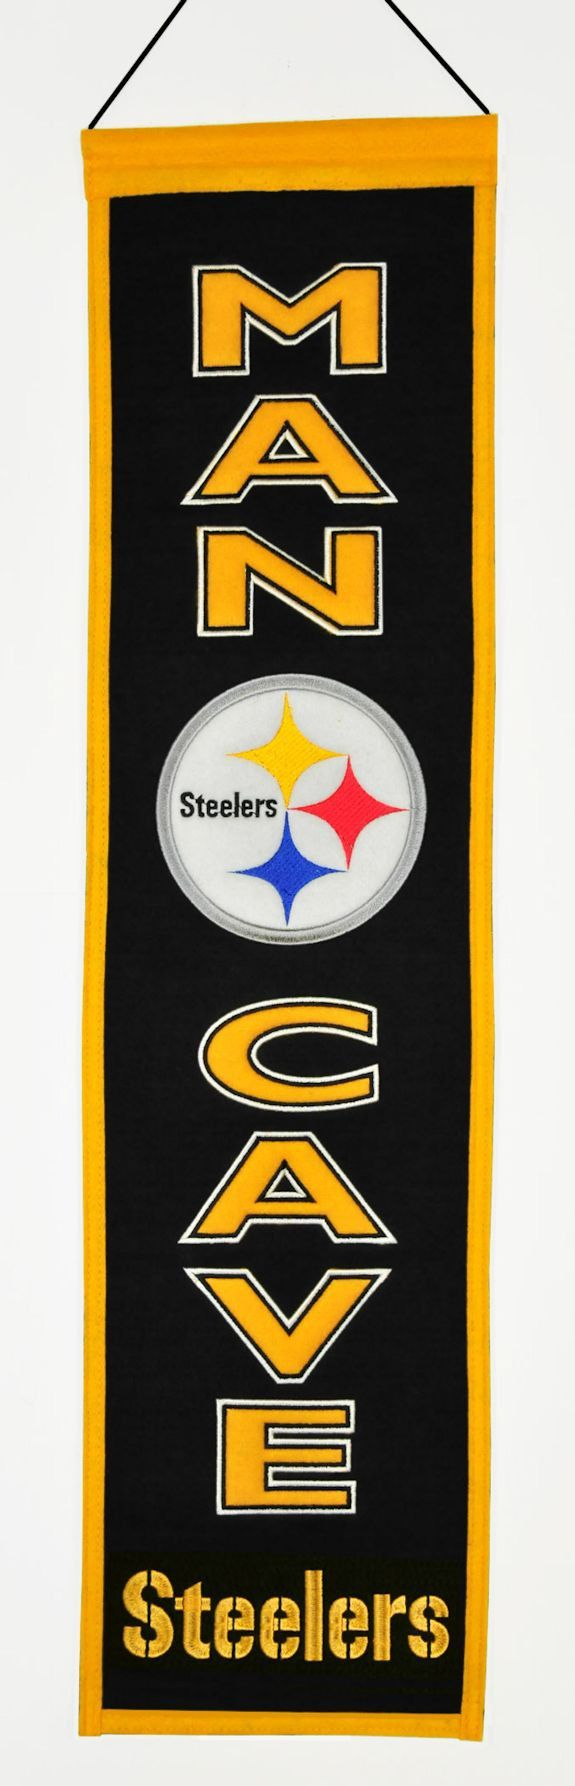 7408849160/674088491601/_A_ These uniquely shaped banners are the ultimate Man Cave Collectible! Our Man Cave Banner designs feature the teams logo and many include their…